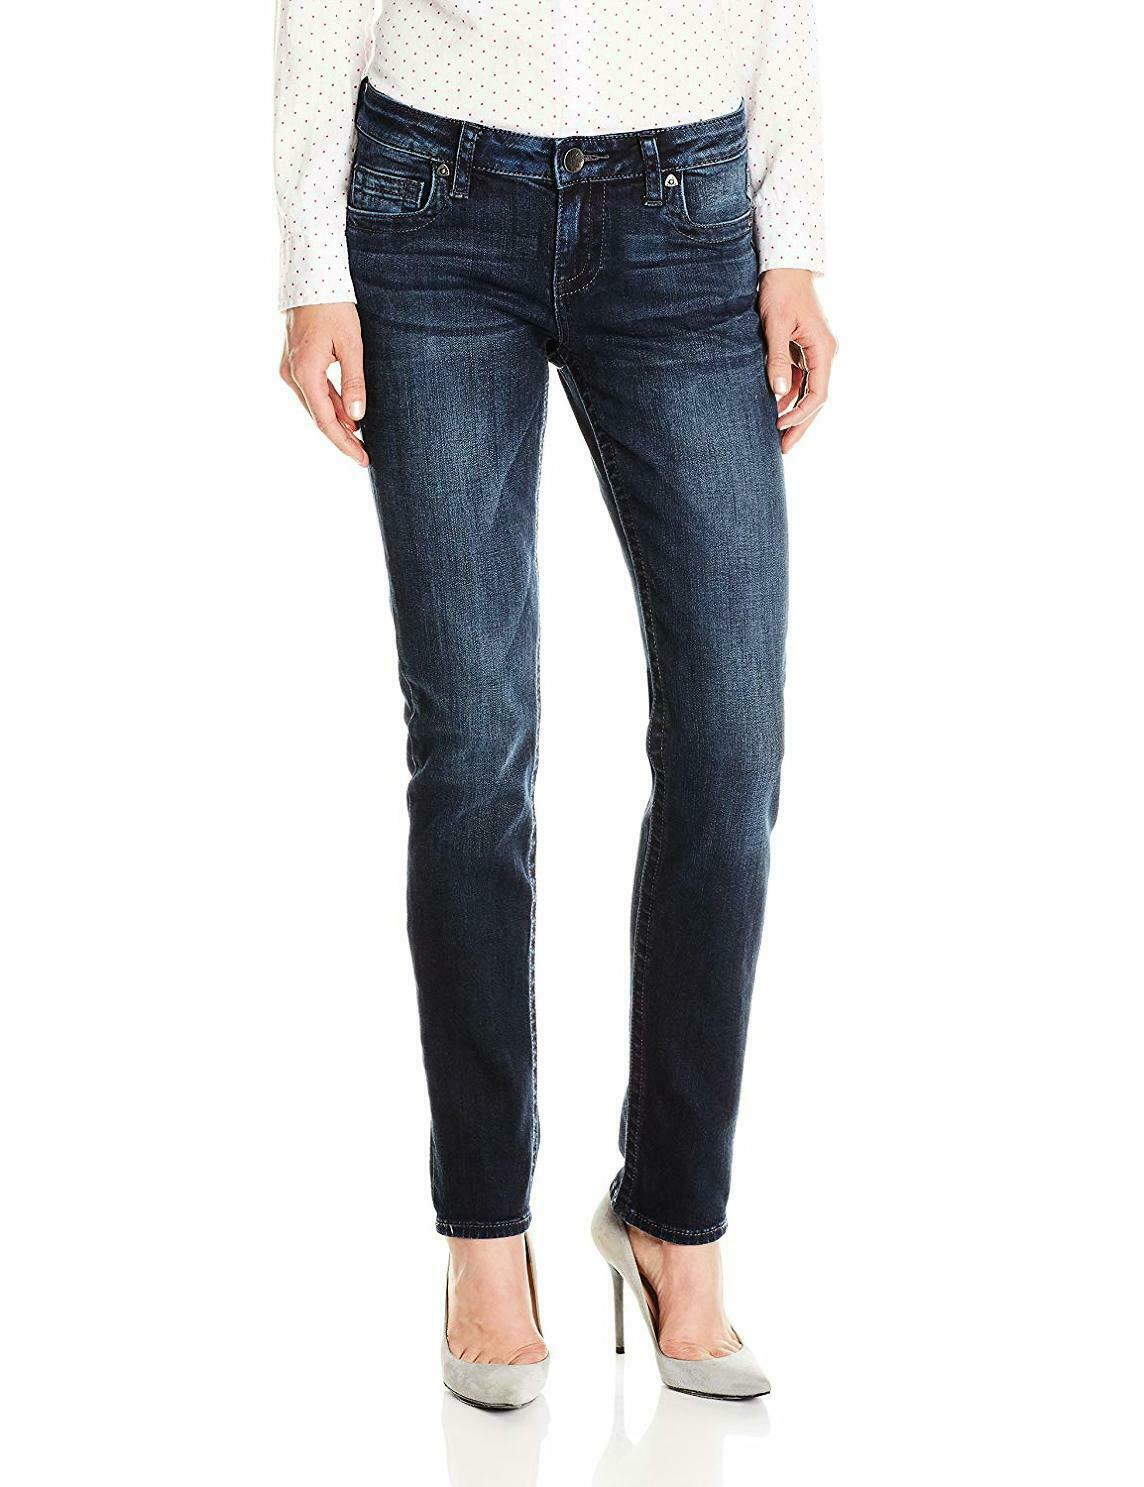 KUT from the Kloth Women's Stevie Straight Leg Jean - Choose SZ color